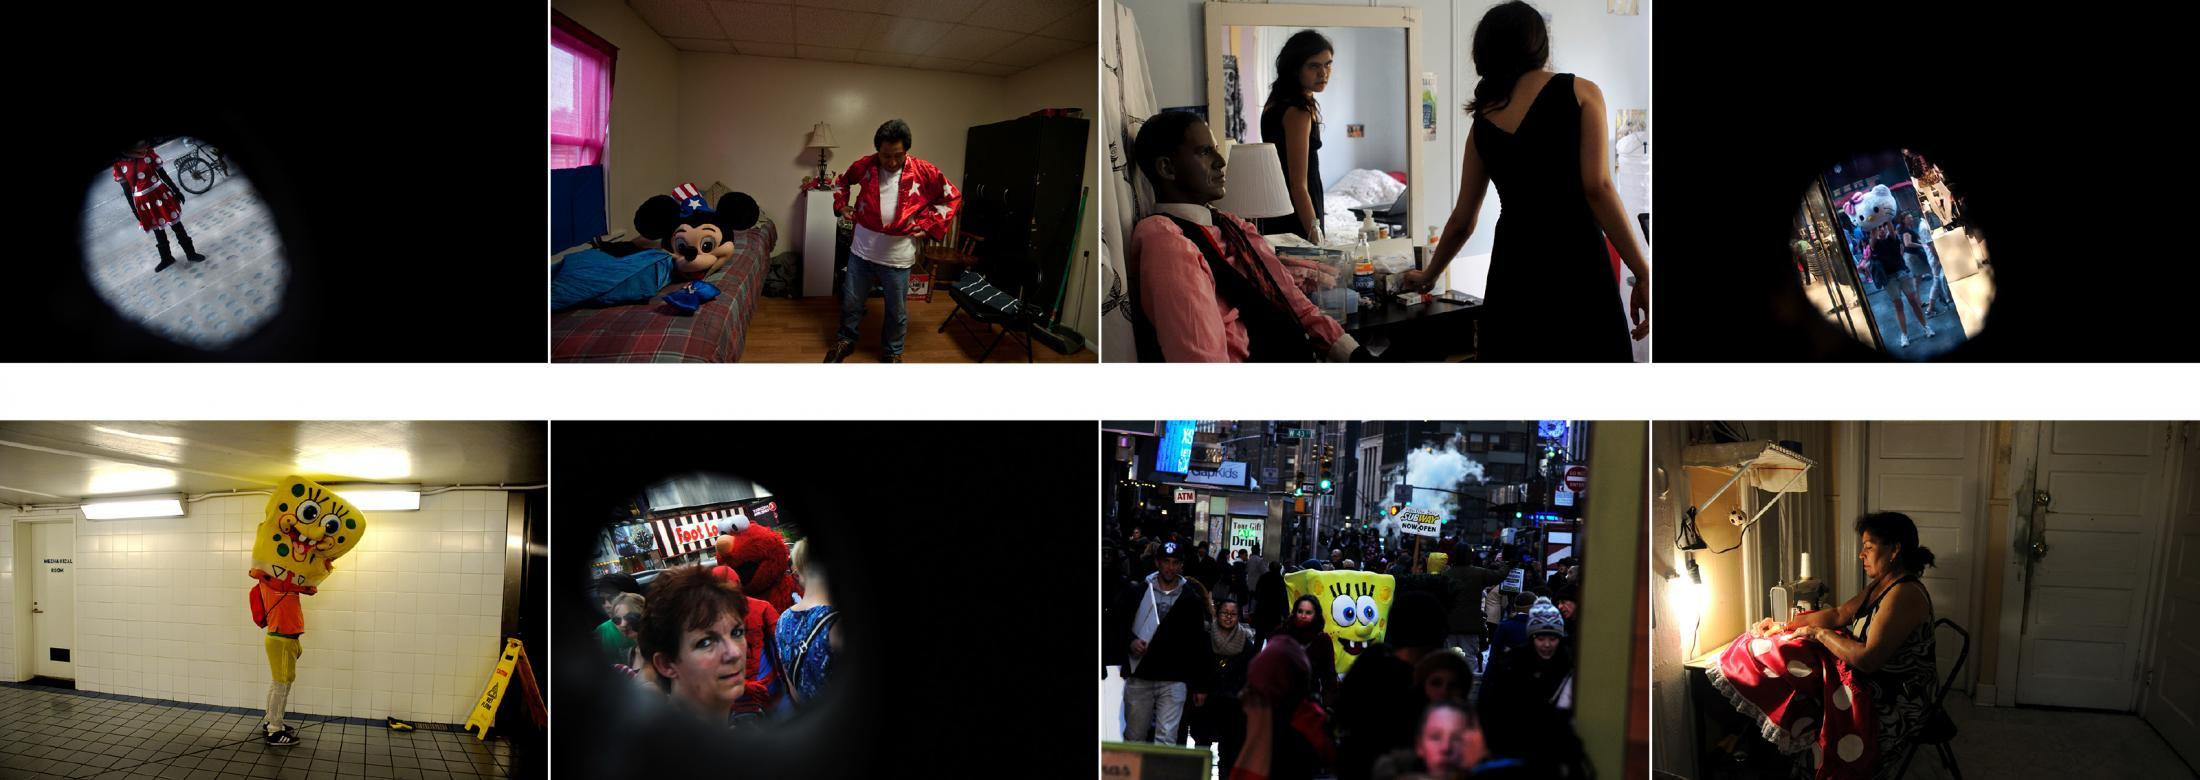 Art and Documentary Photography - Loading Sin_t__tulo_copia.jpg